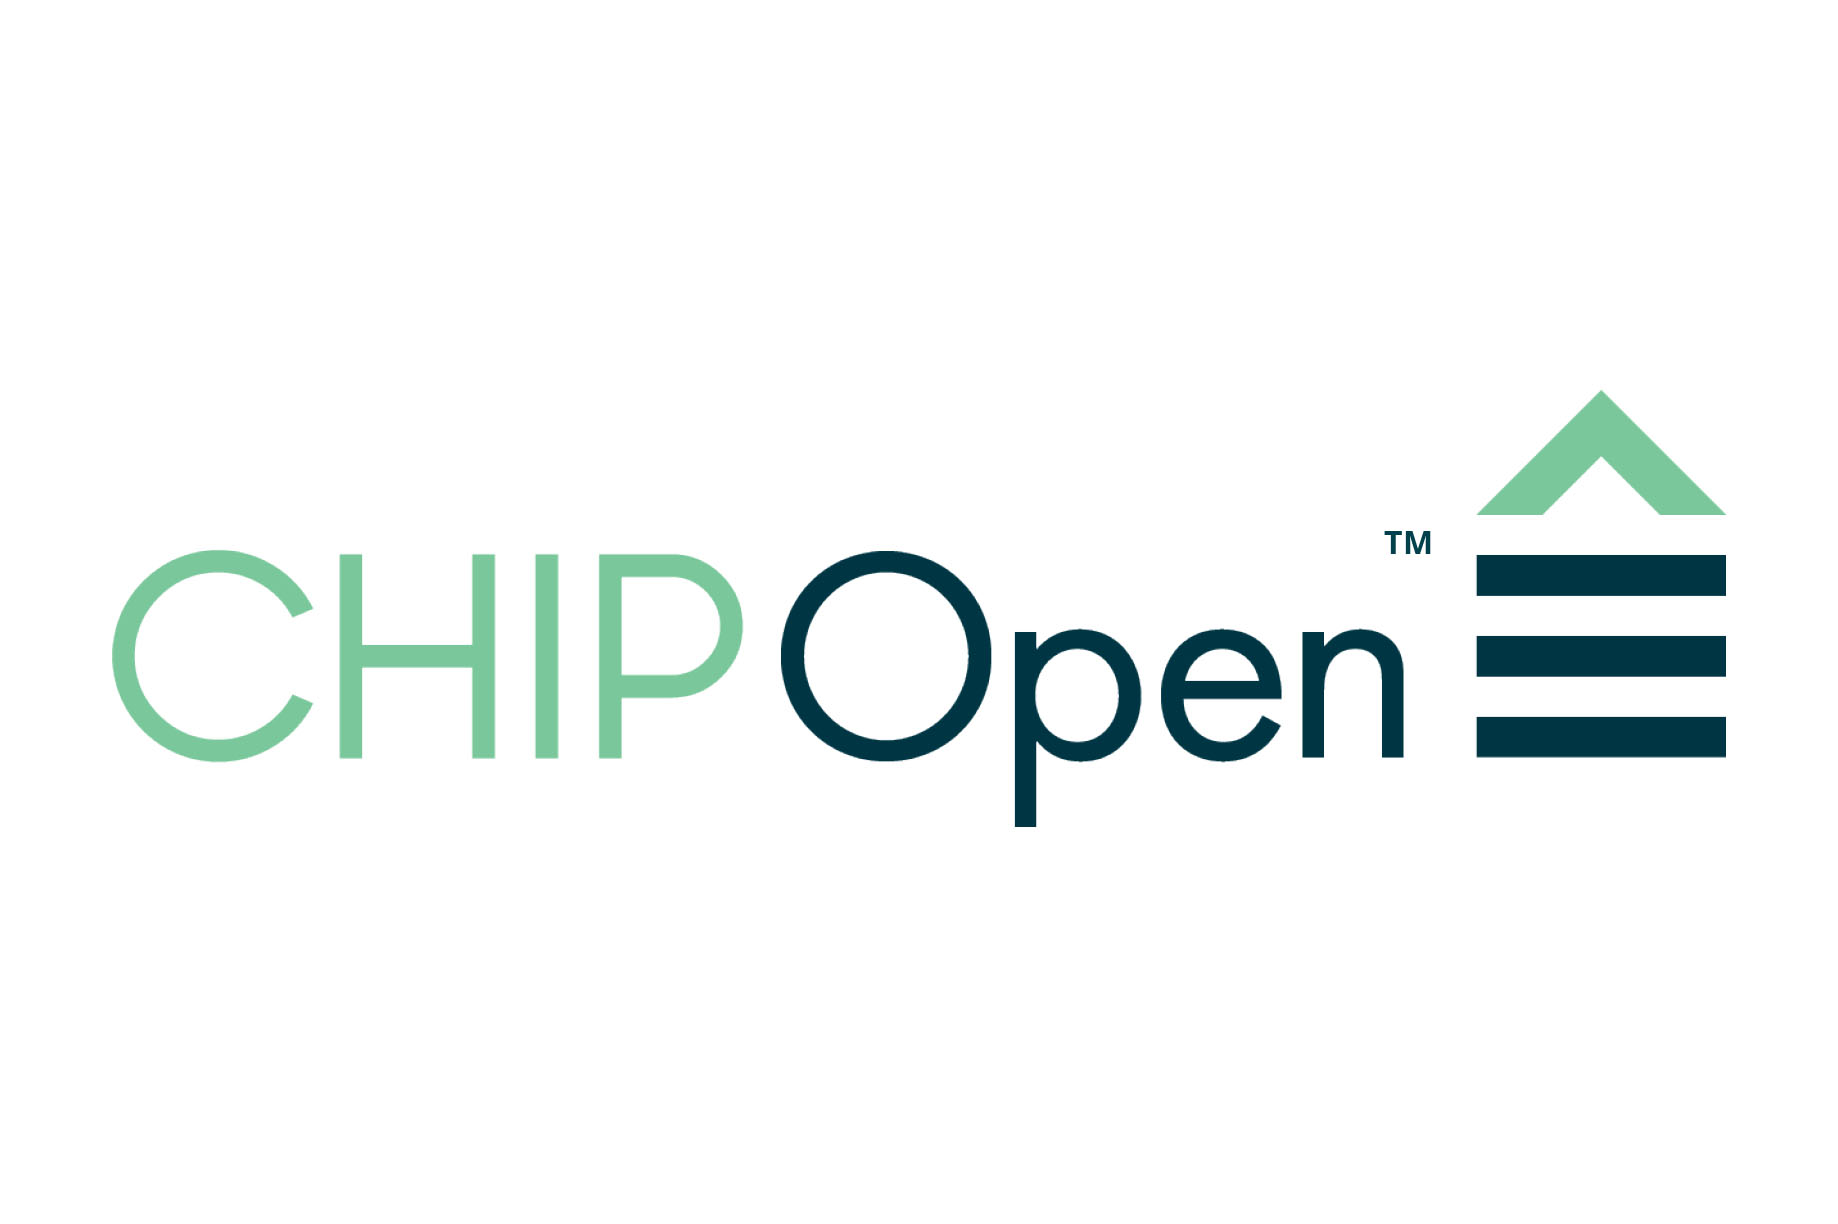 CHIP Open — A tool for the times as Canadians 55+ seek flexible financing options